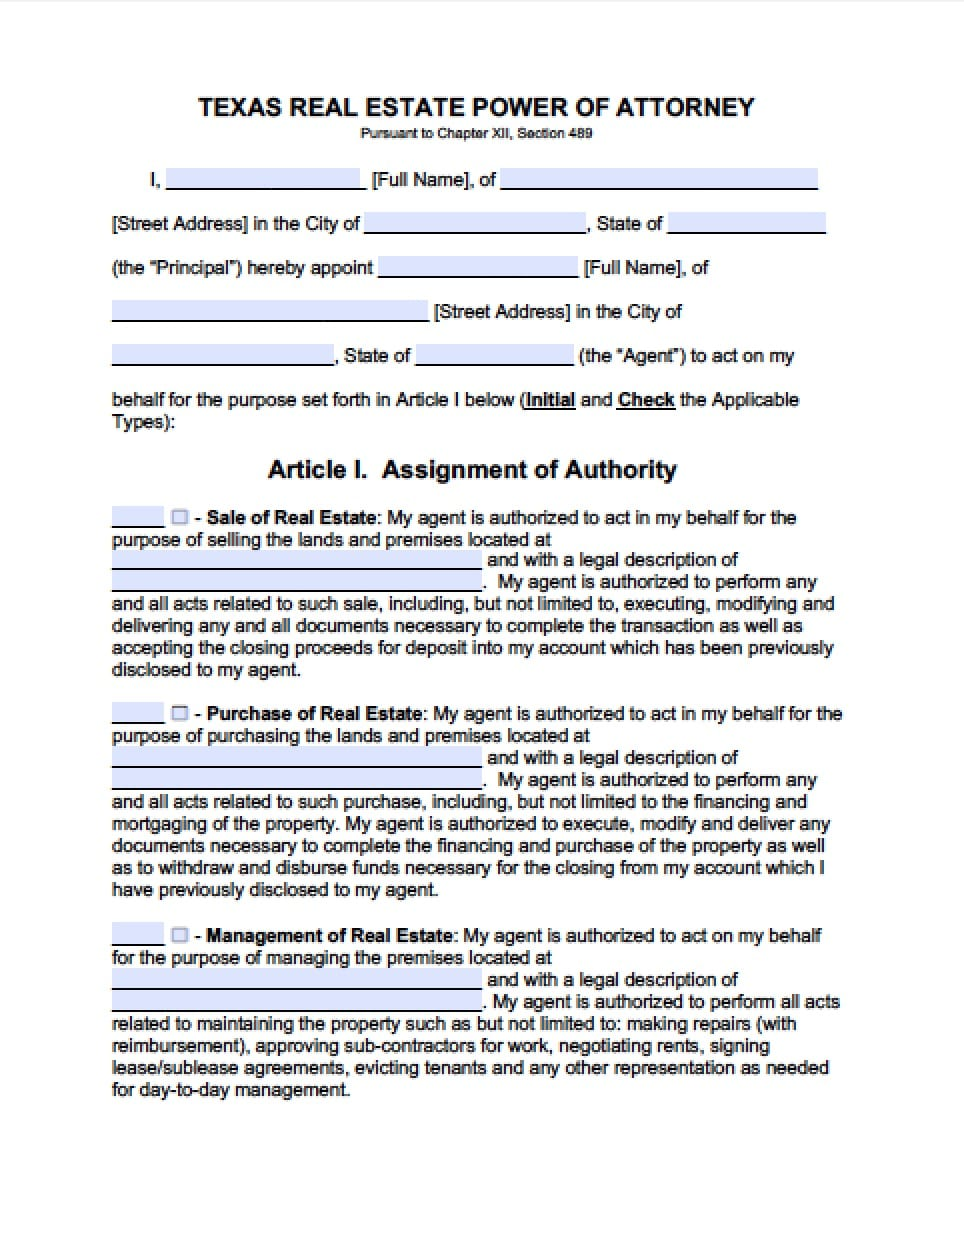 Texas Minor Child Power of Attorney Form - Power of Attorney ...